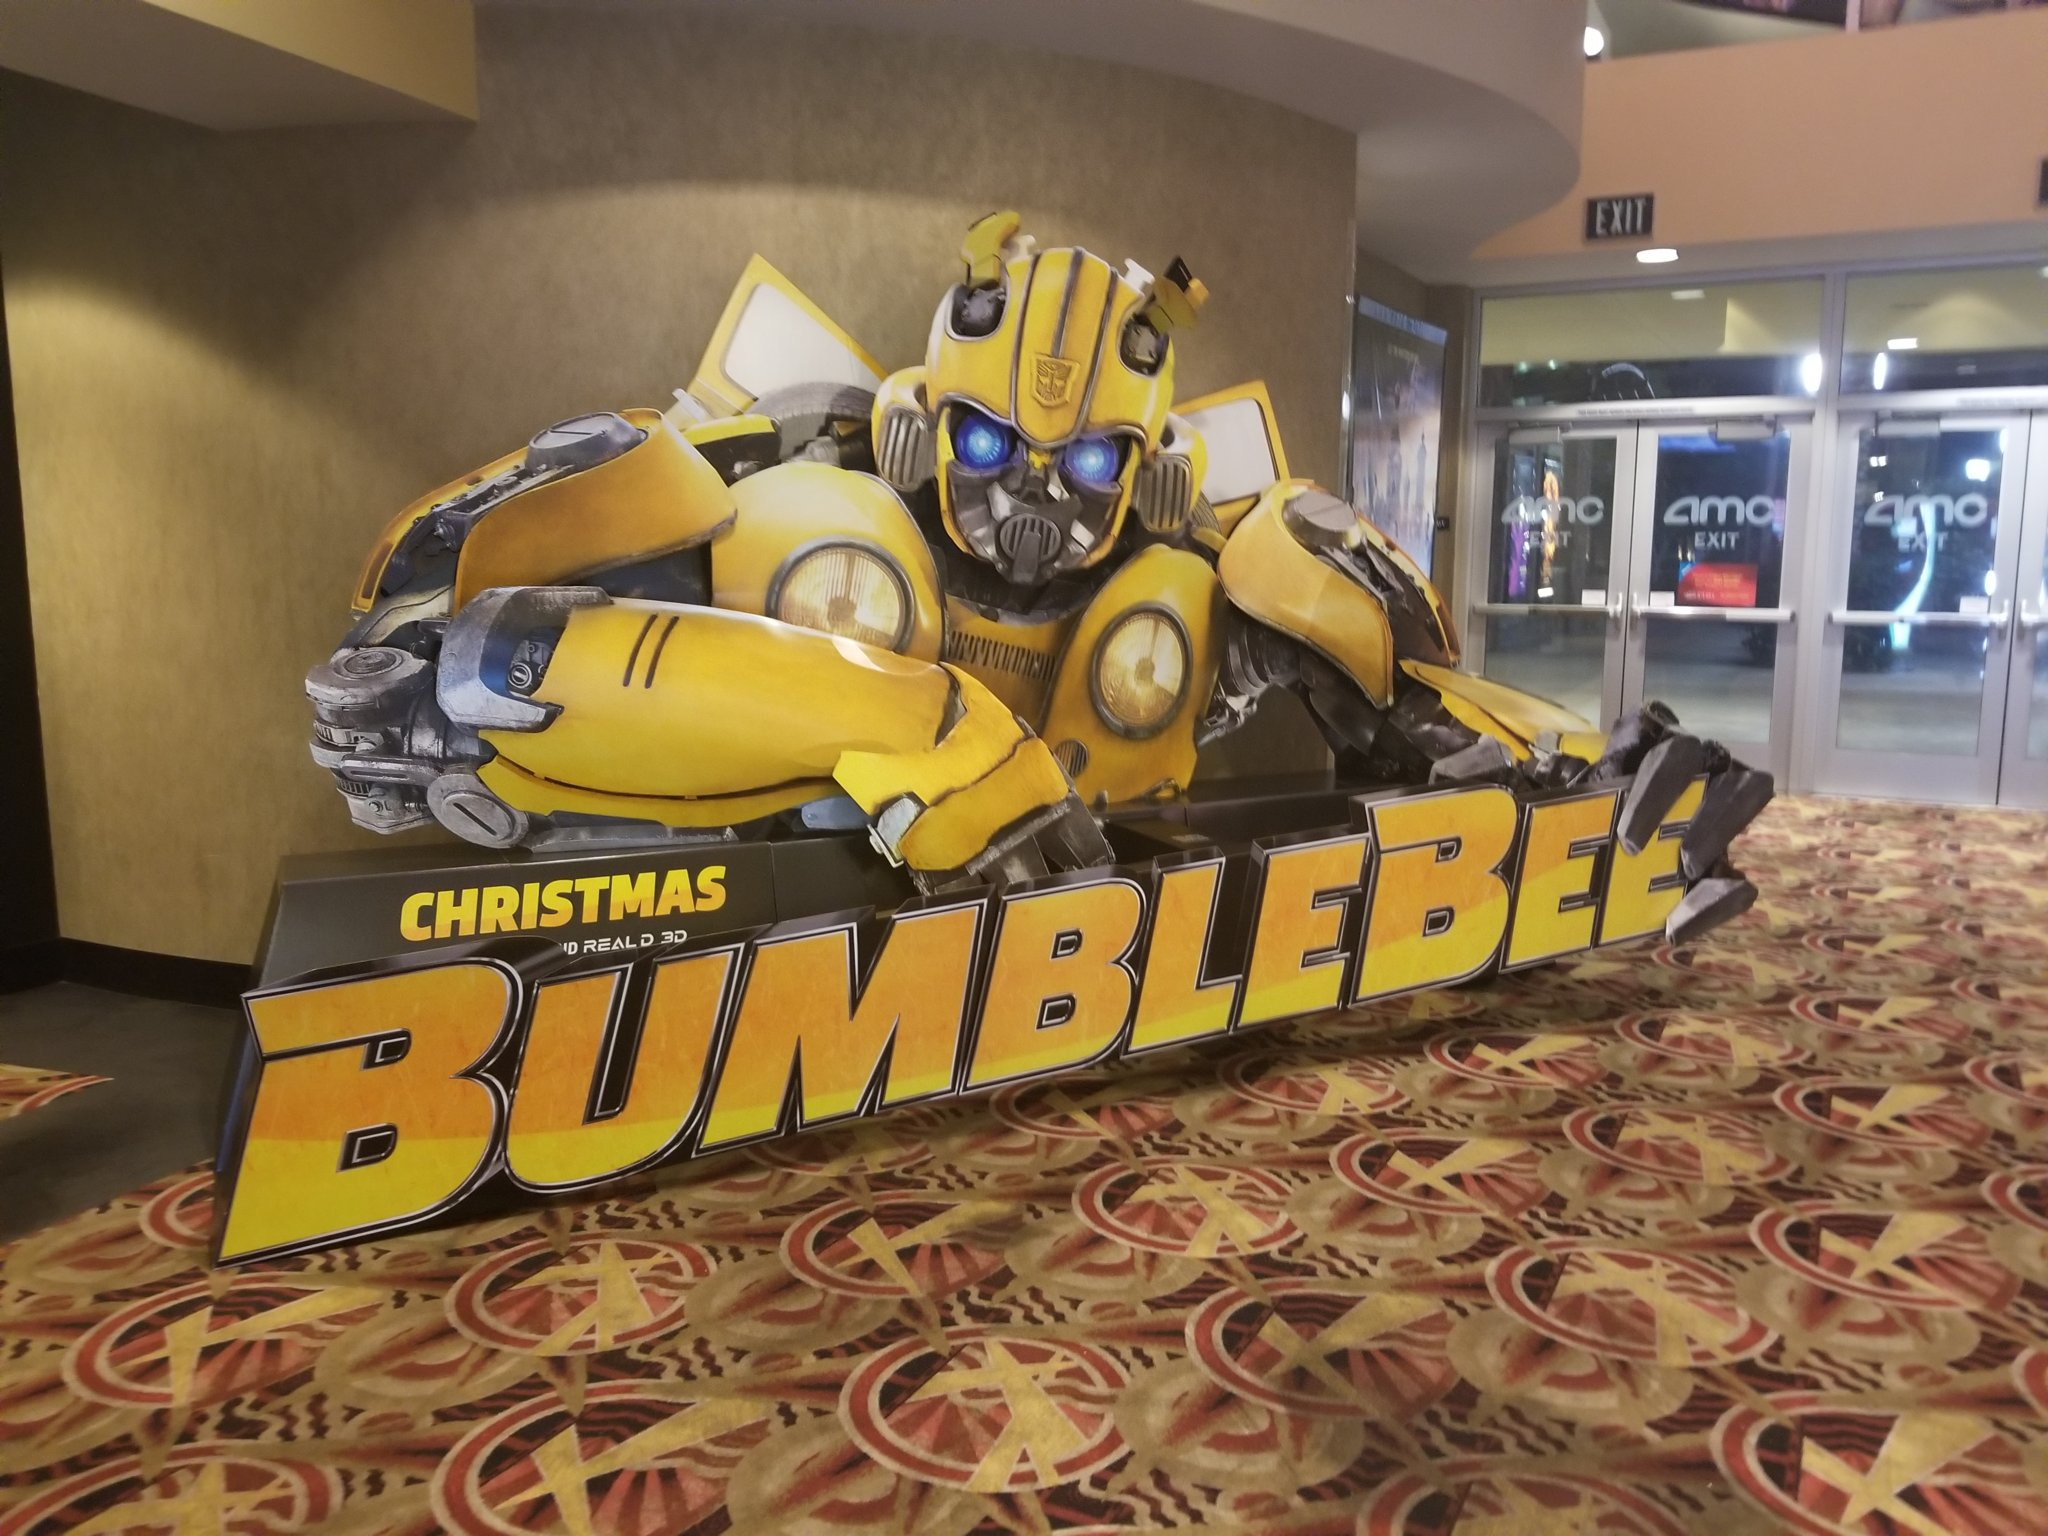 Transformers Animated Wallpaper Official Image Of Transformers Bumblebee Movie Promo